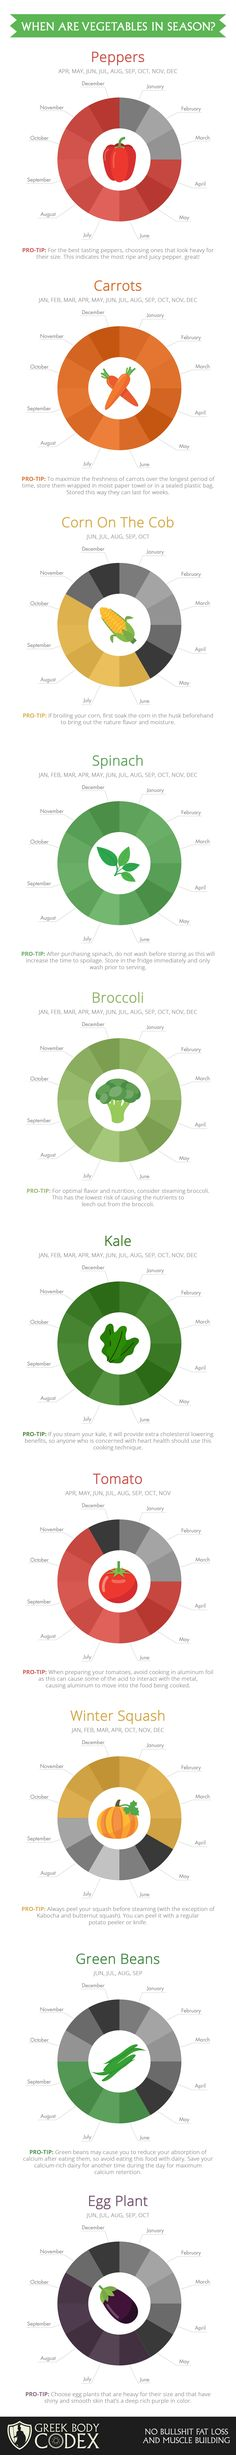 Keep your fridge stocked with in-season vegetables using this chart.  #kombuchaguru #organic Also check out: http://kombuchaguru.com